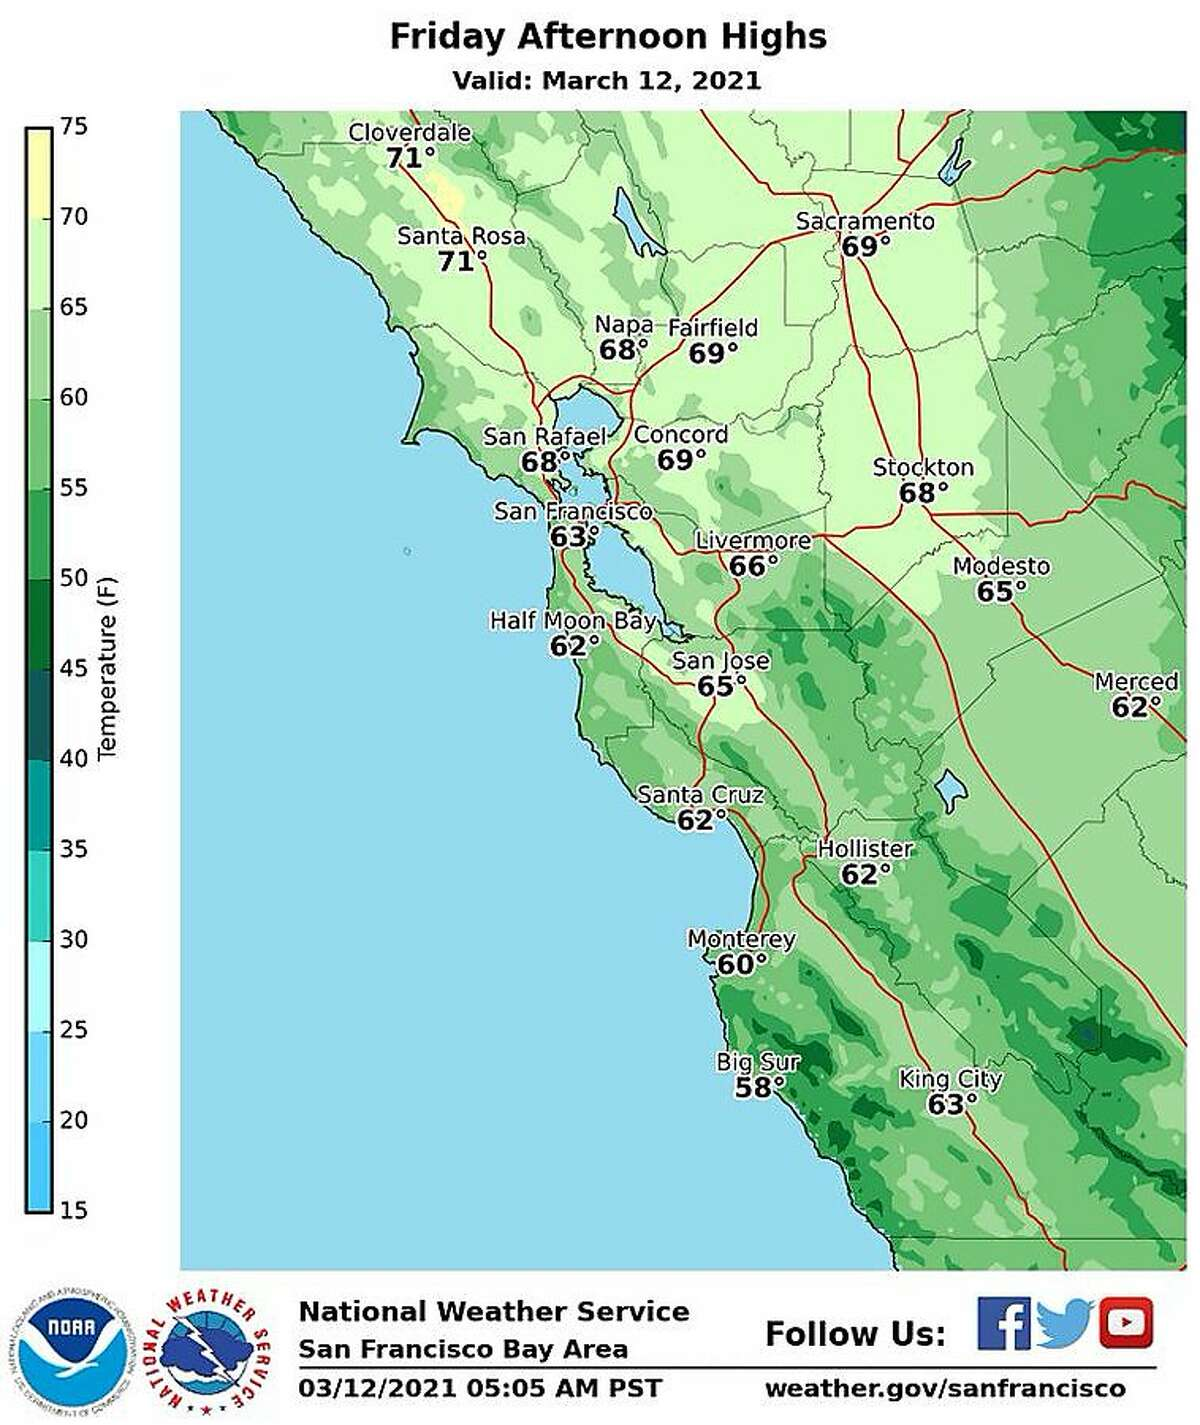 National Weather Service map of Bay Area temperatures